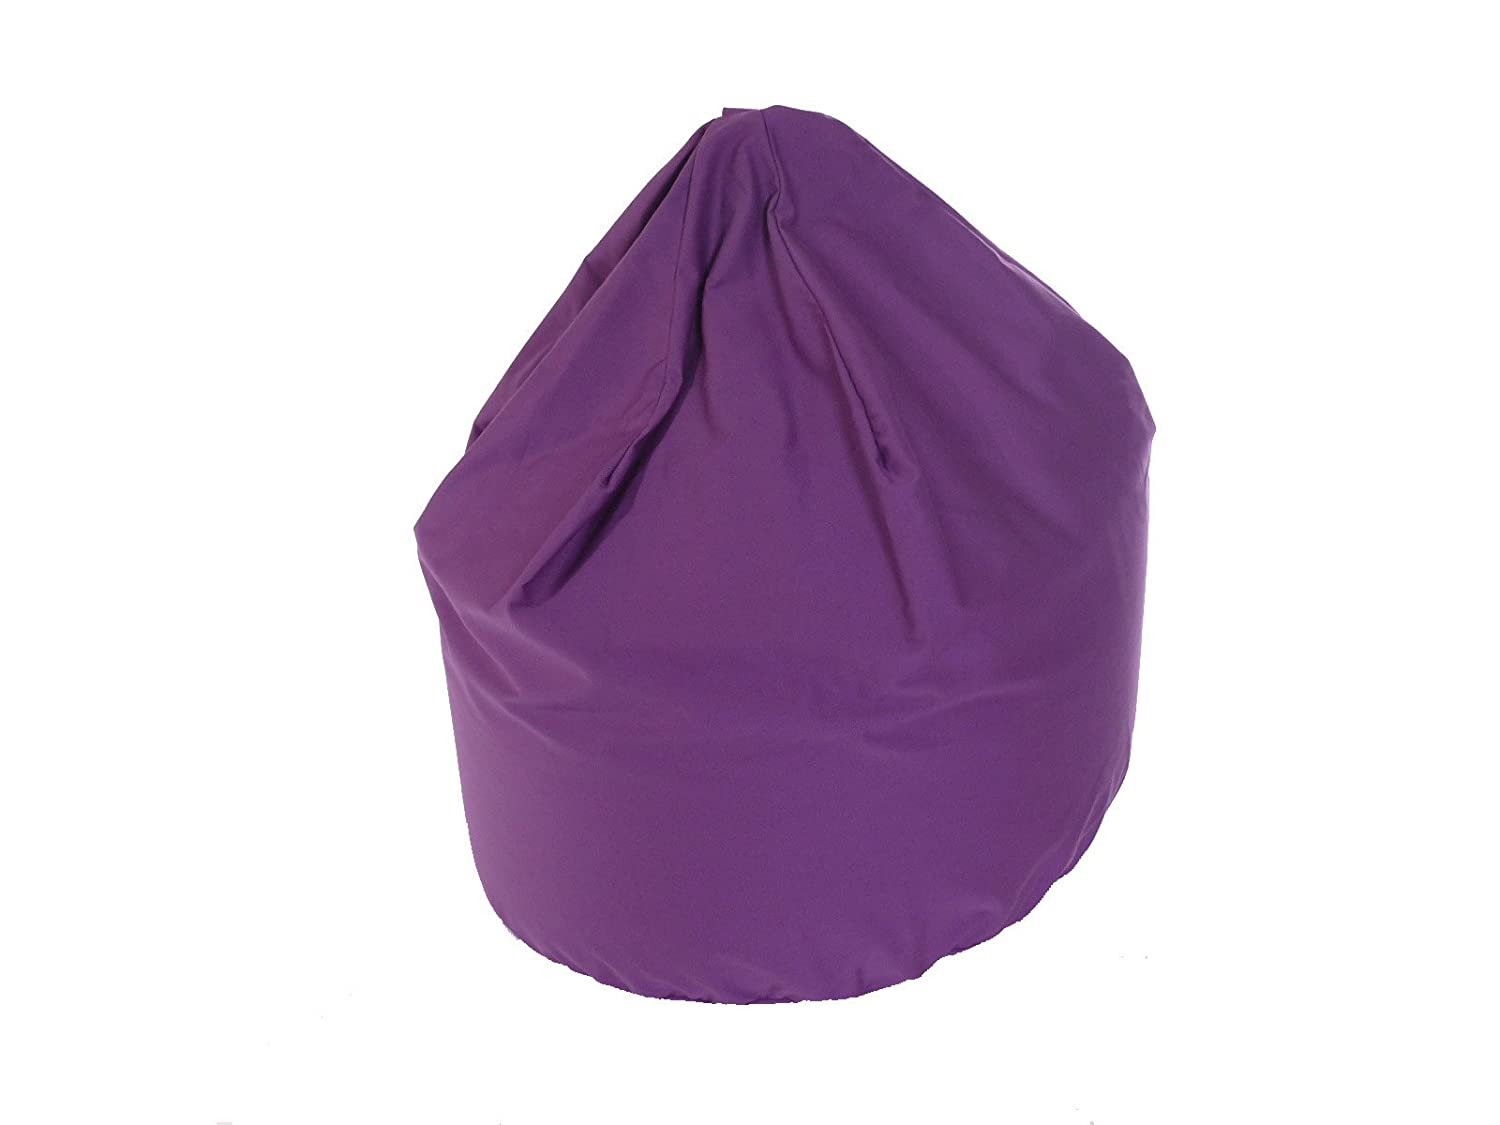 BeanLazy LARGE SIZE Cotton Drill Bean Bag Beans In Purple